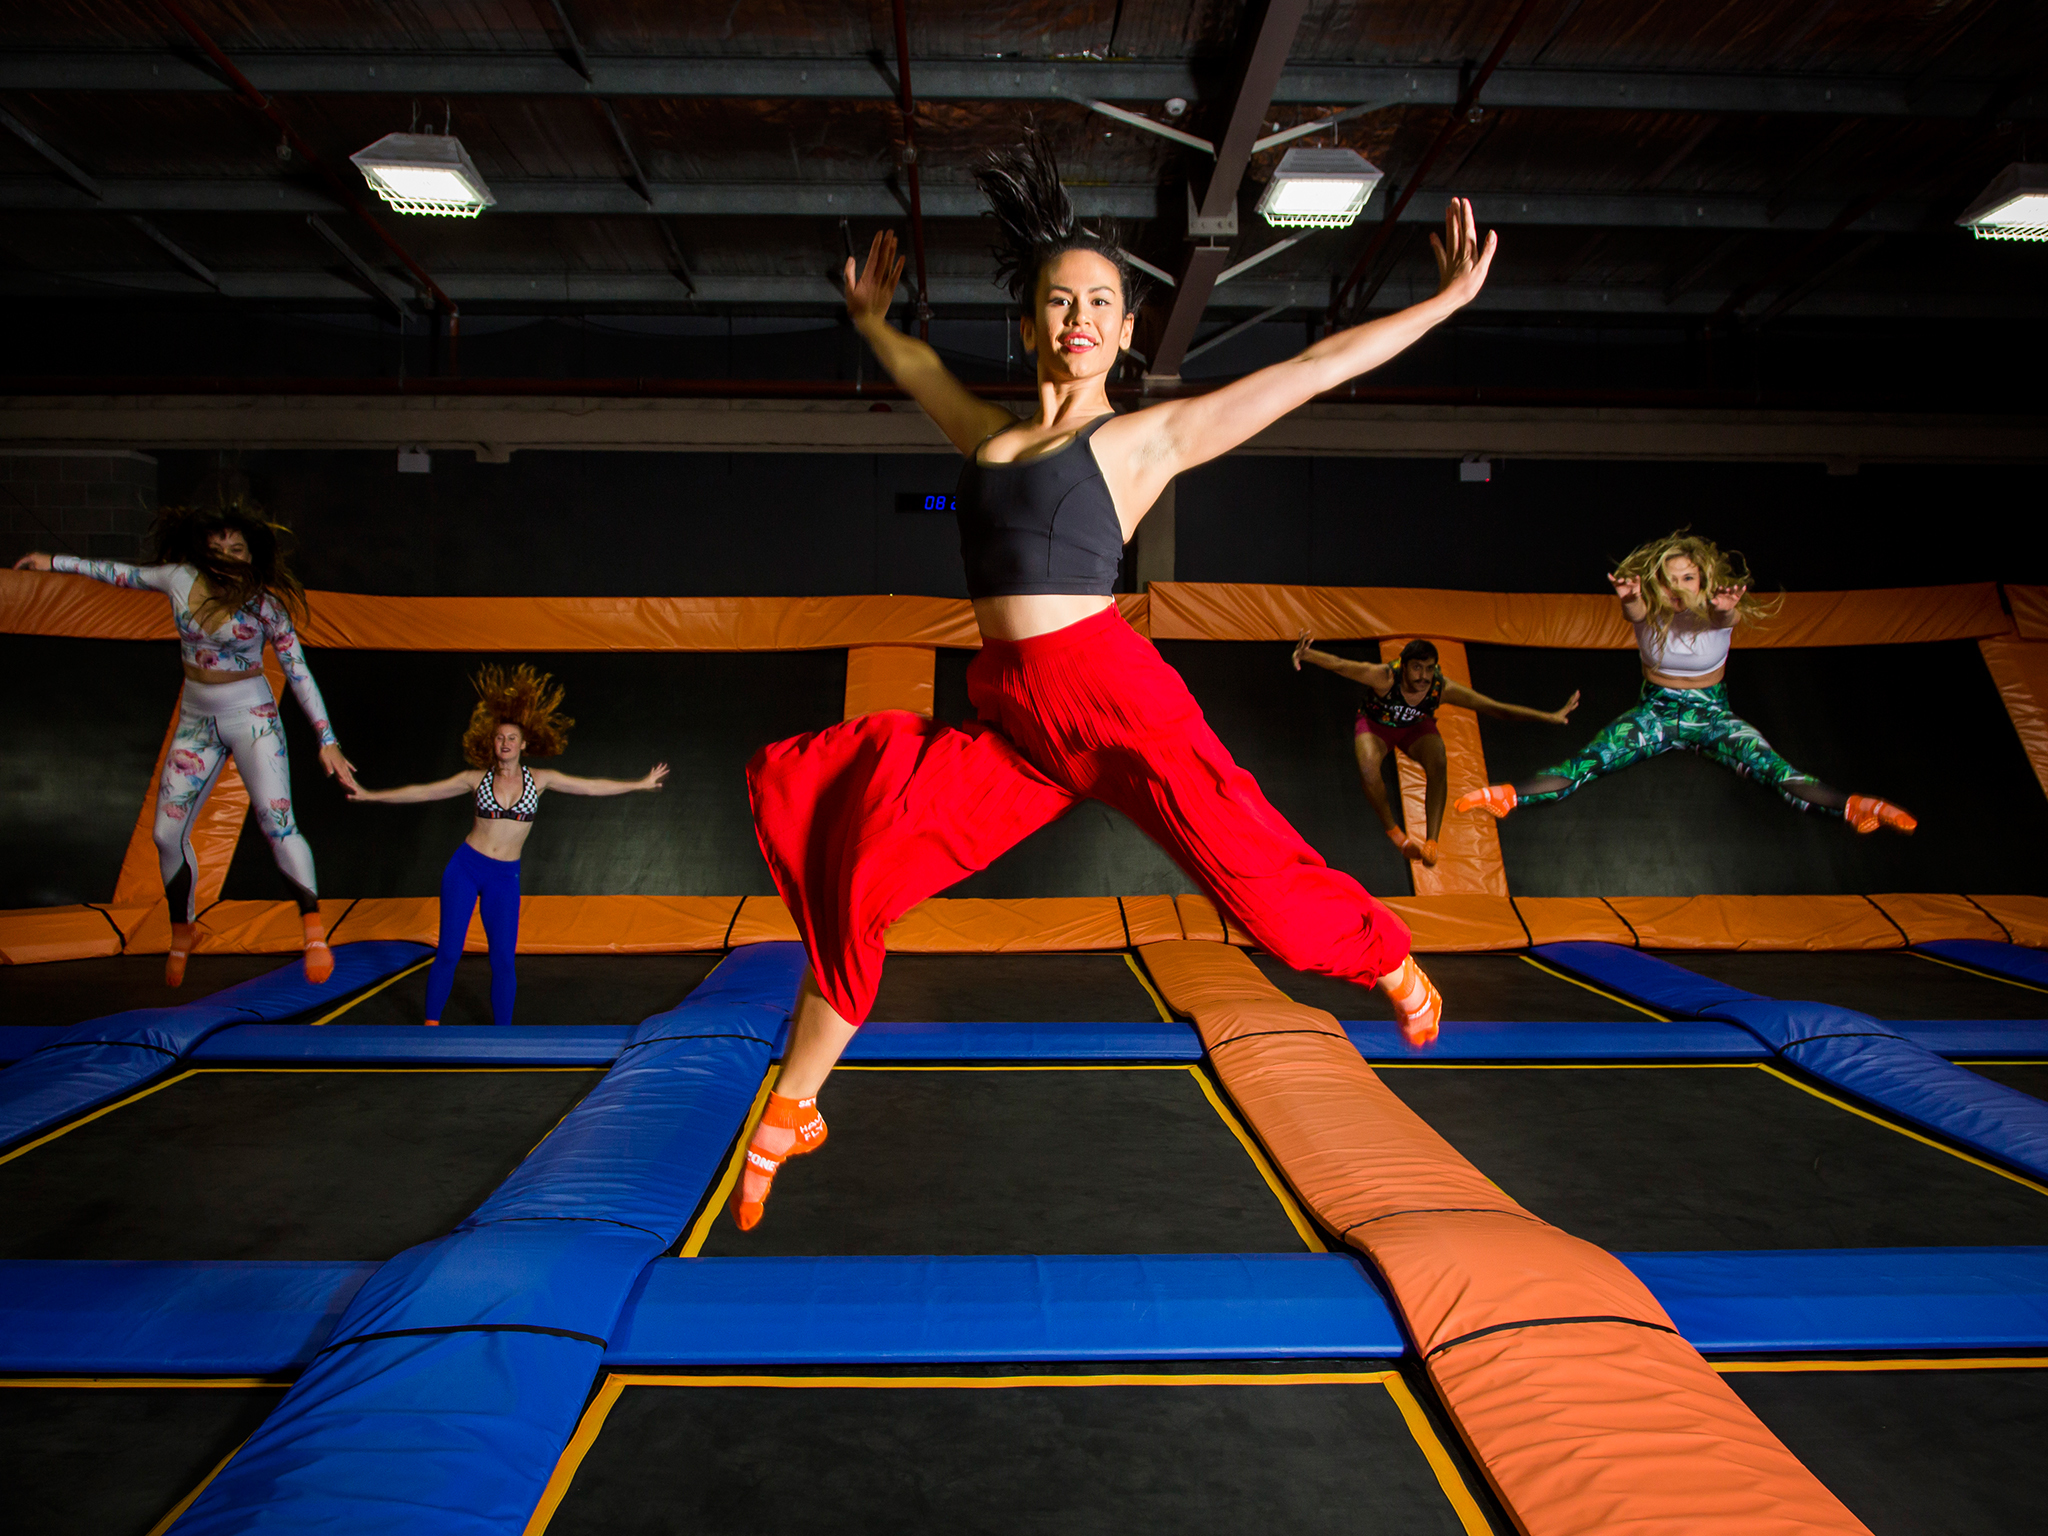 The best trampoline parks in Sydney